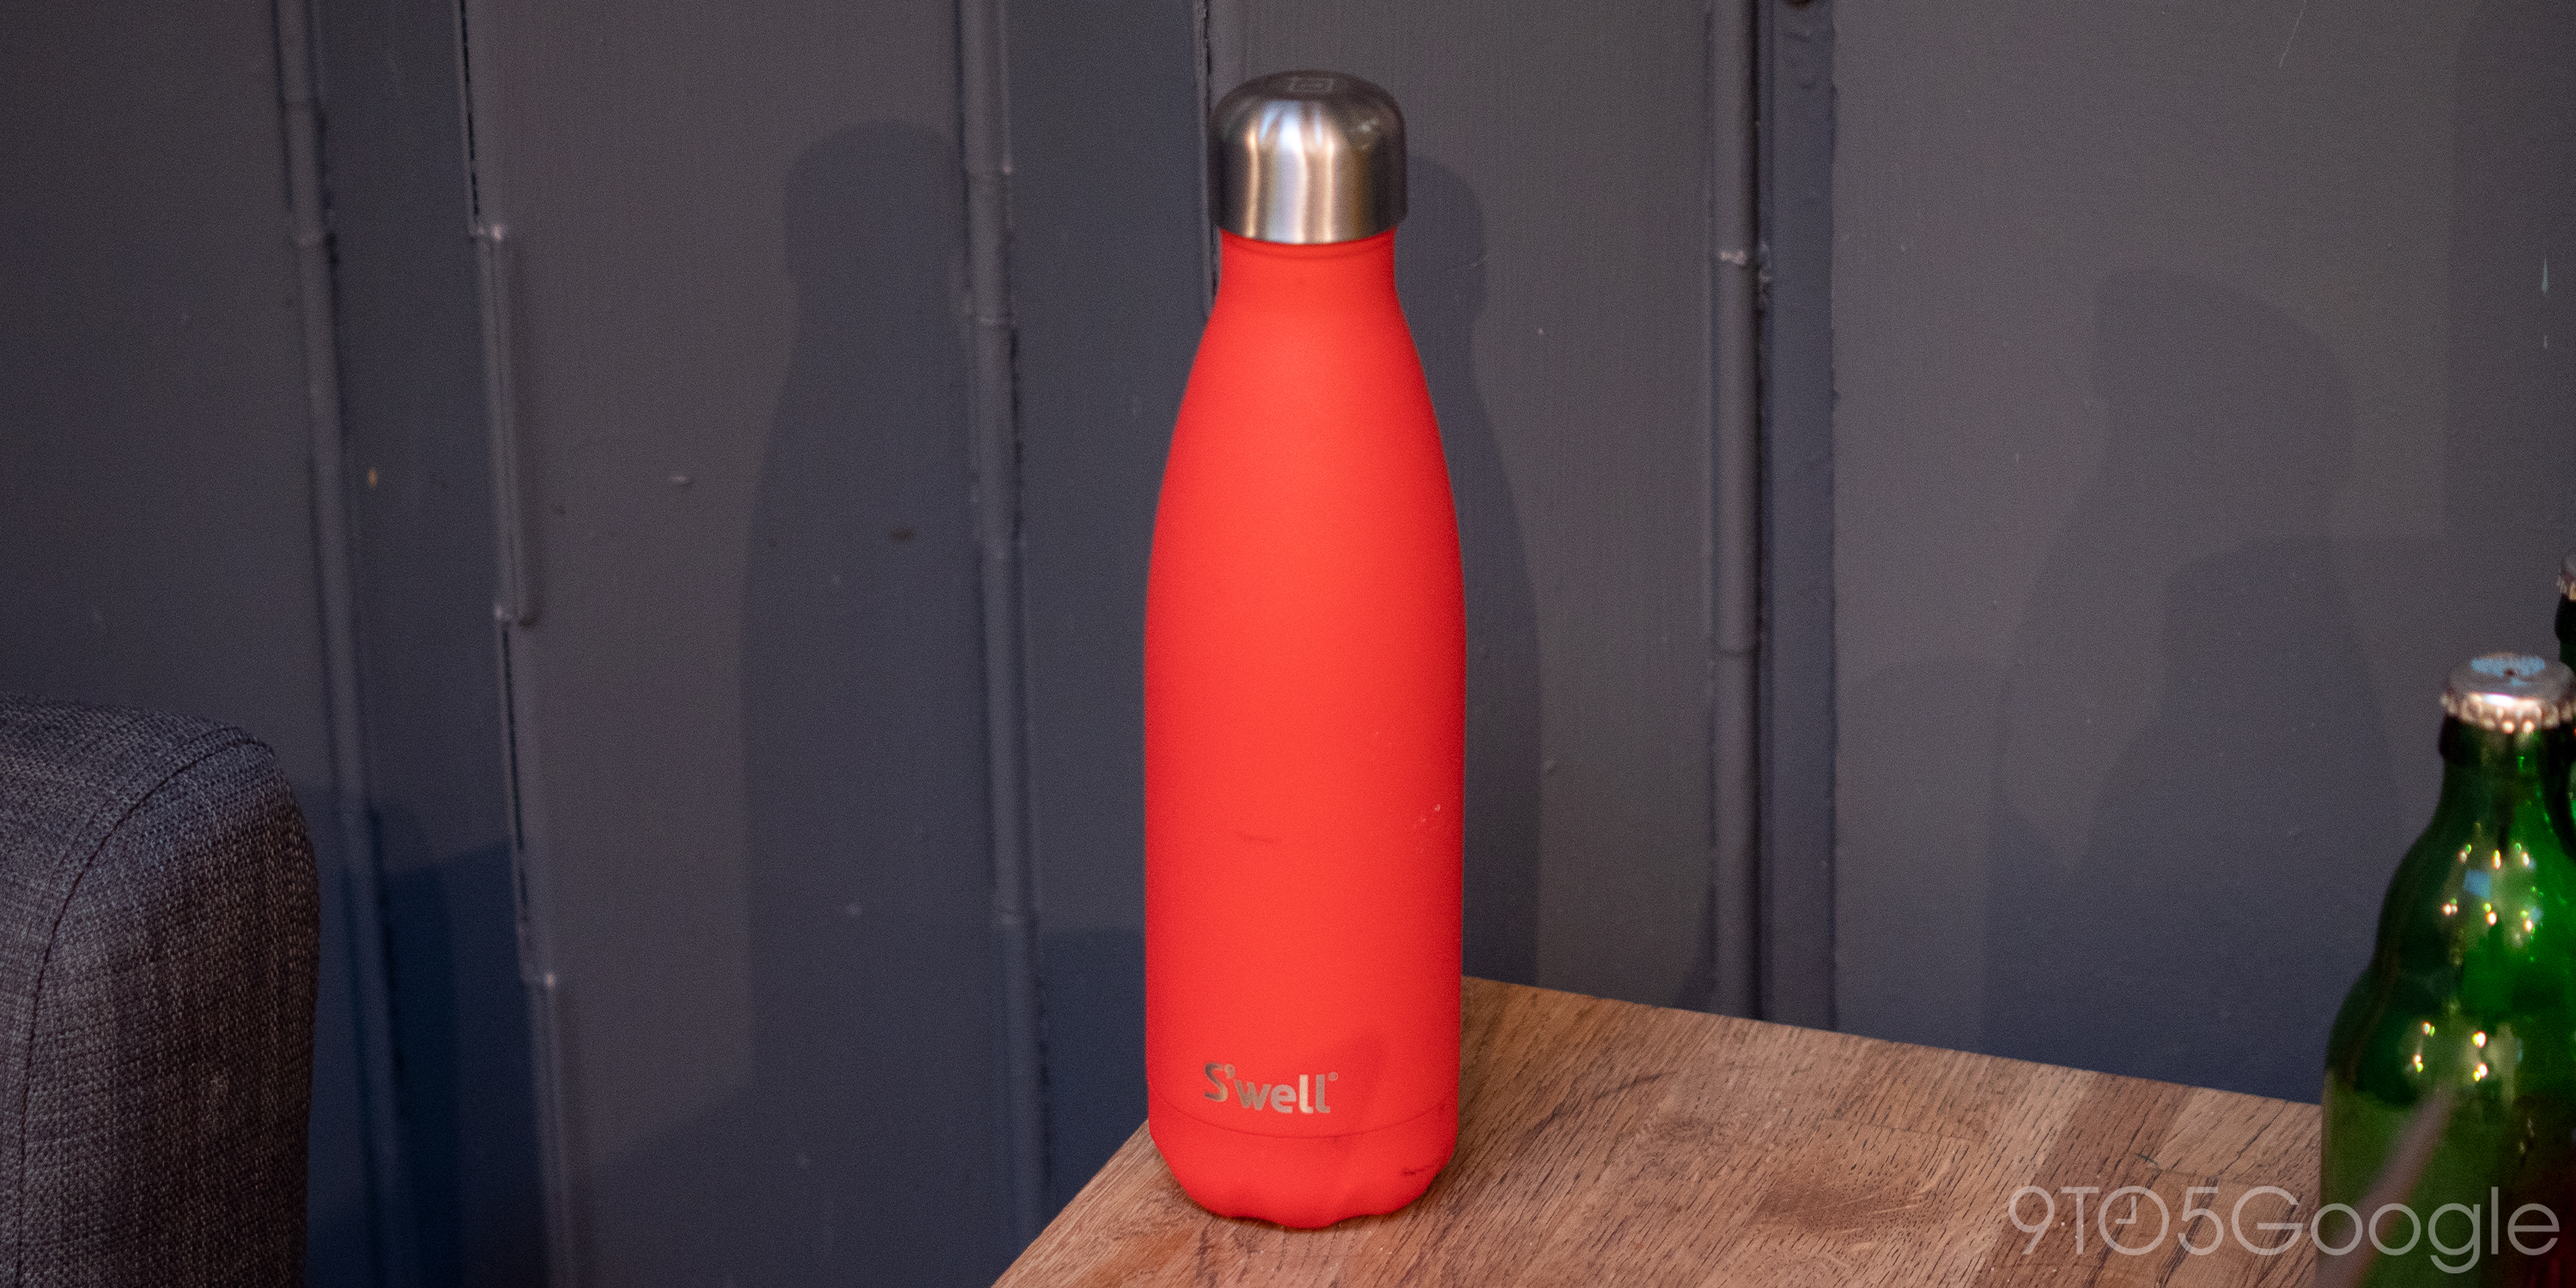 S'well bottle - digital nomad gifts